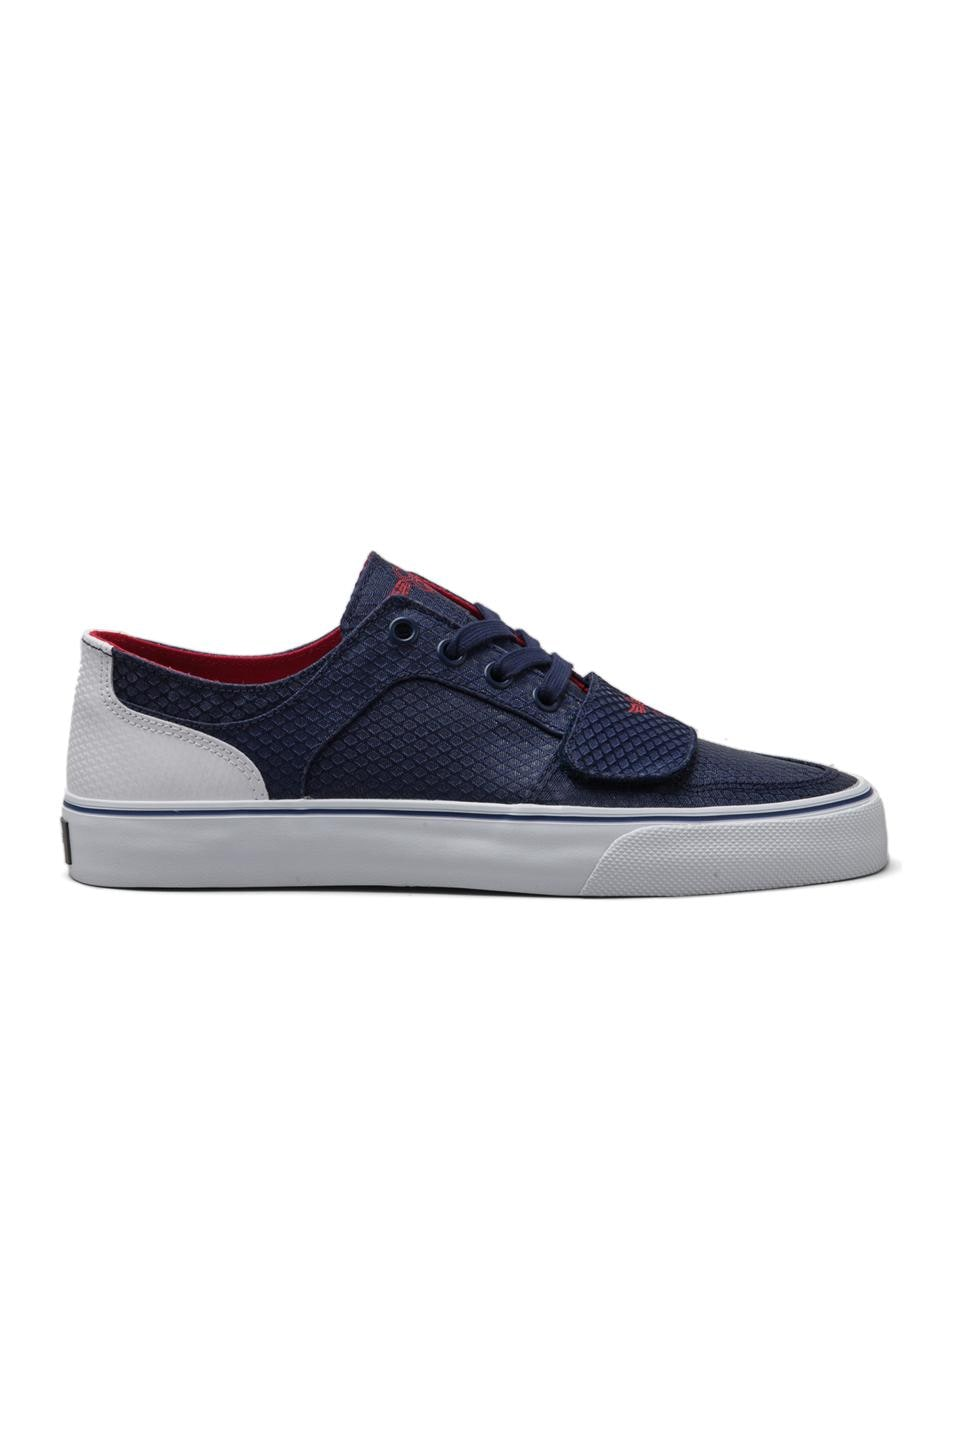 Creative Recreation Cesario Lo XVI in indigo/White/Red